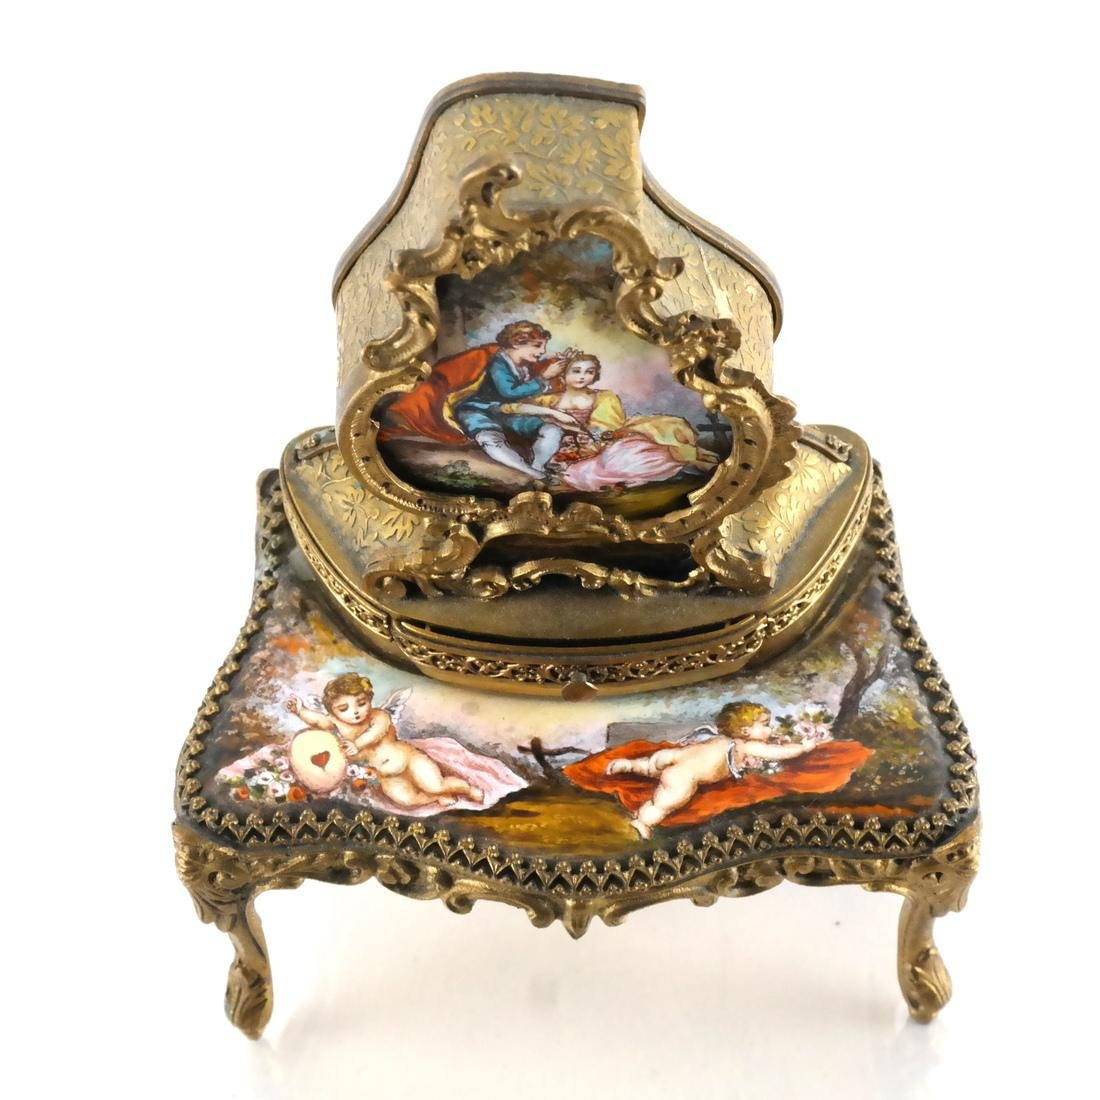 Viennese Enamel Desk-Form Music Box - 2